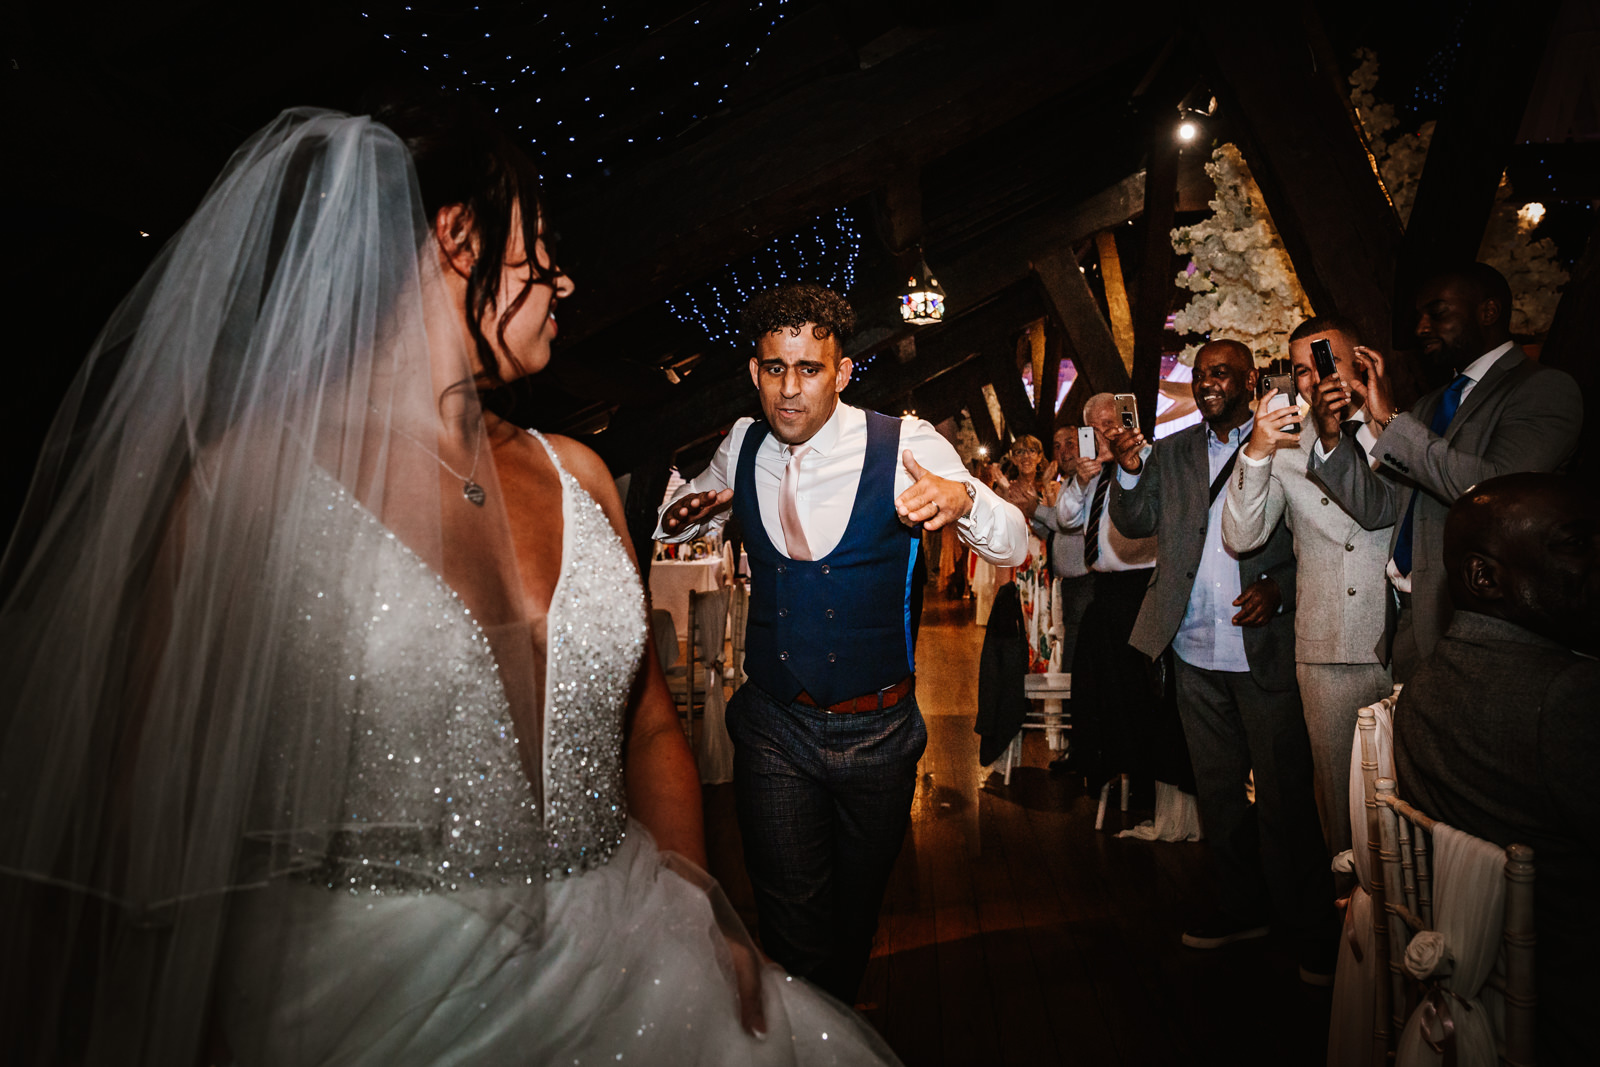 Groom dancing as he enters the room